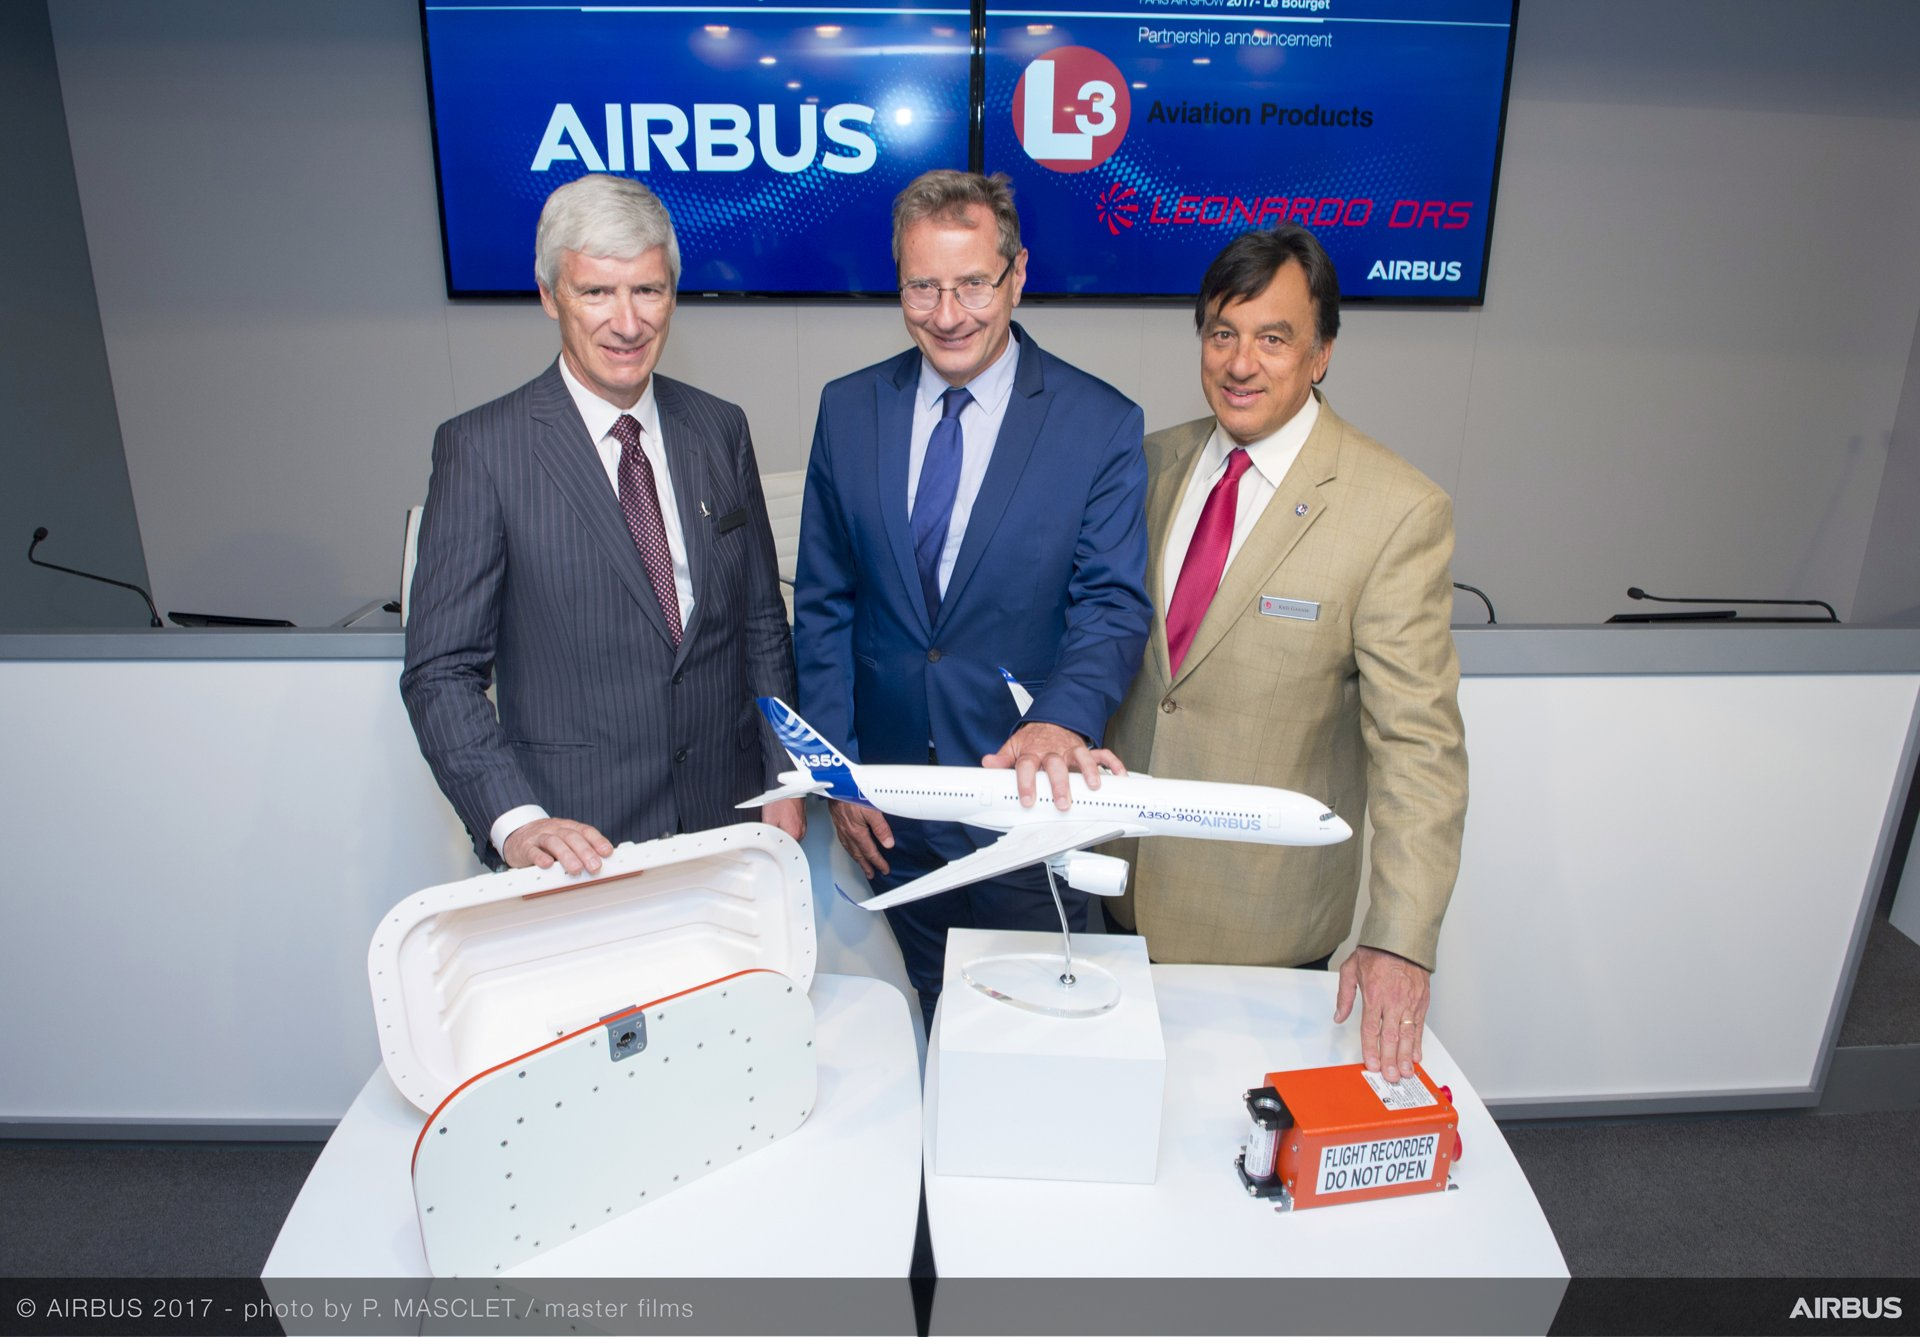 AIRBUS L3 Technologies New Flight Recorders Announcement Day3 PAS2017